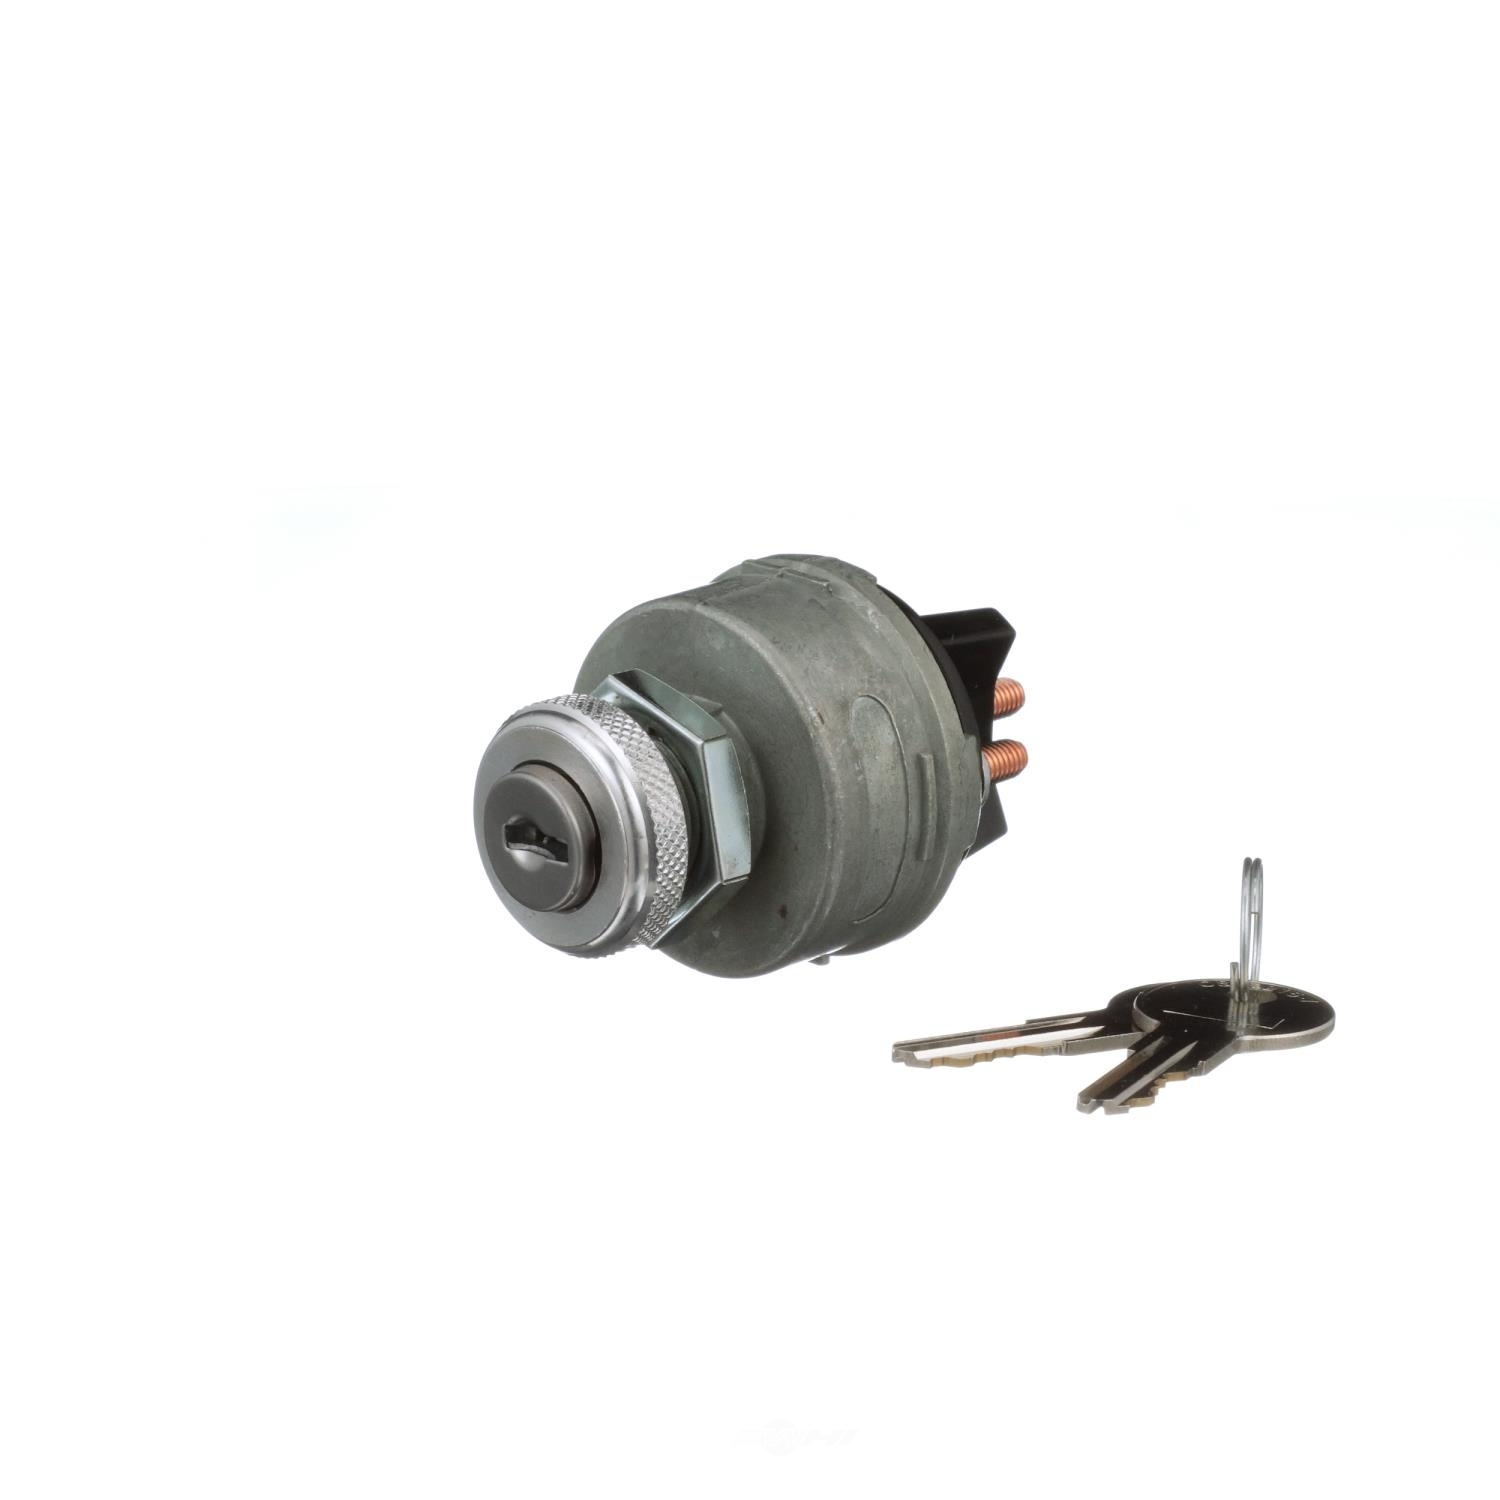 STANDARD T-SERIES - Ignition Lock and Cylinder Switch - STT US14T